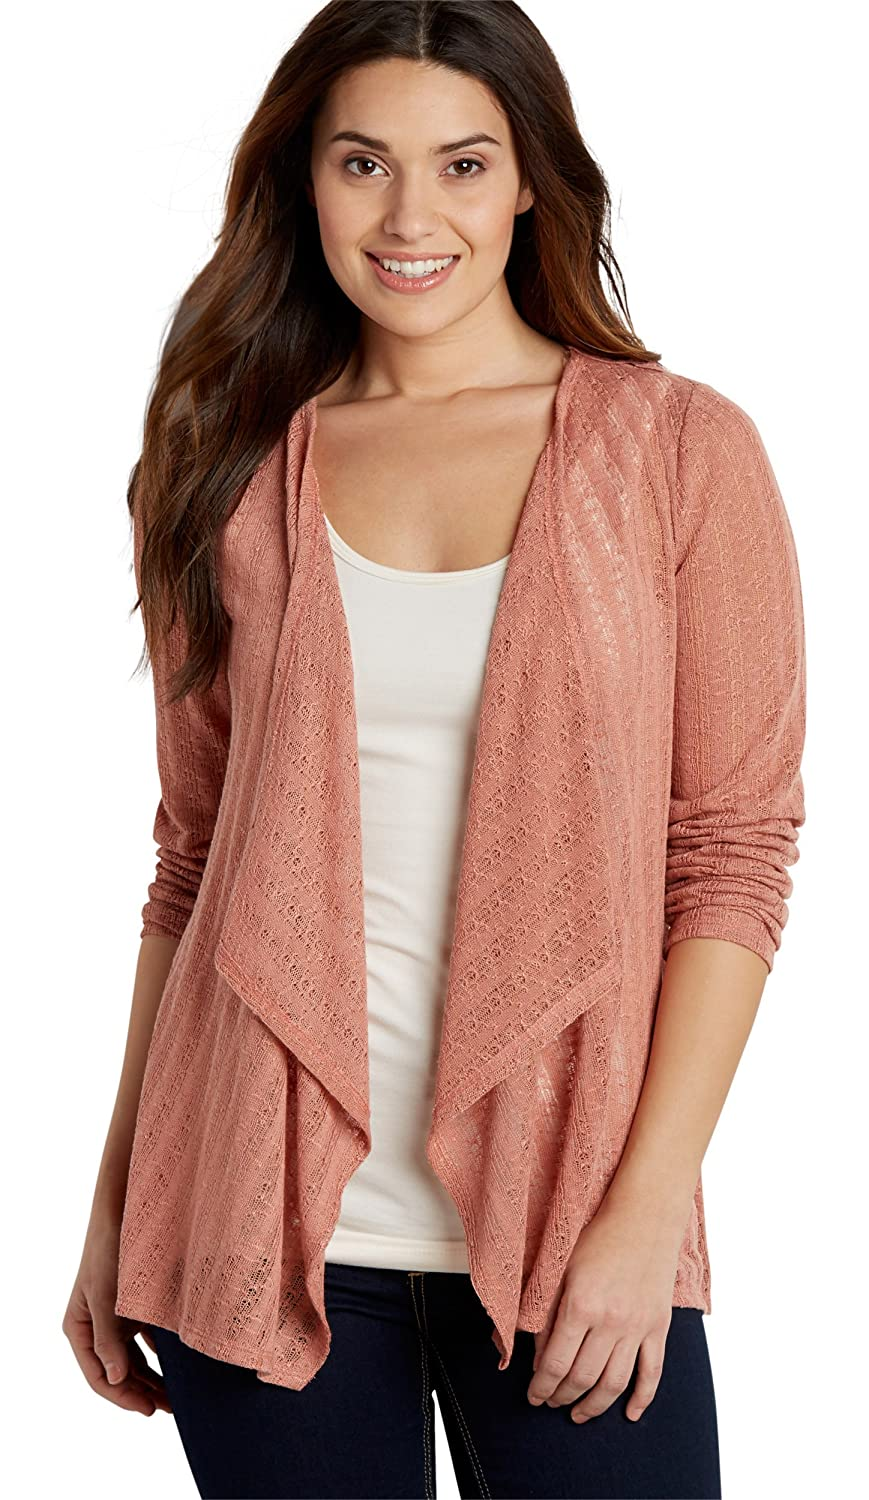 Maurices Women's Pointelle Stitched Cardigan With Crocheted Back